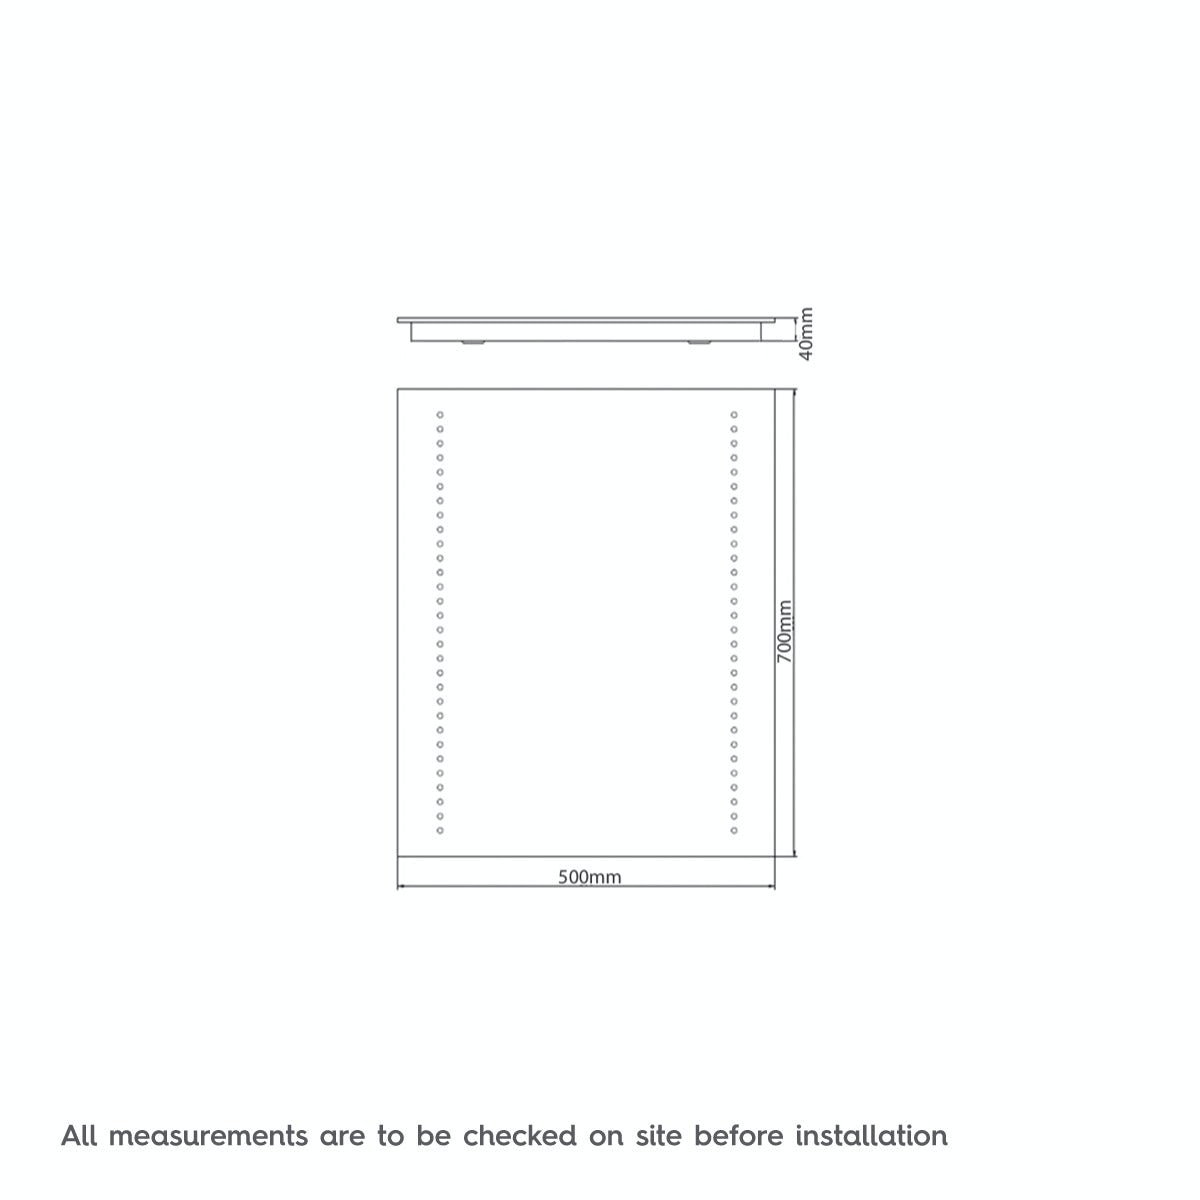 Dimensions for Mode Rodia LED mirror